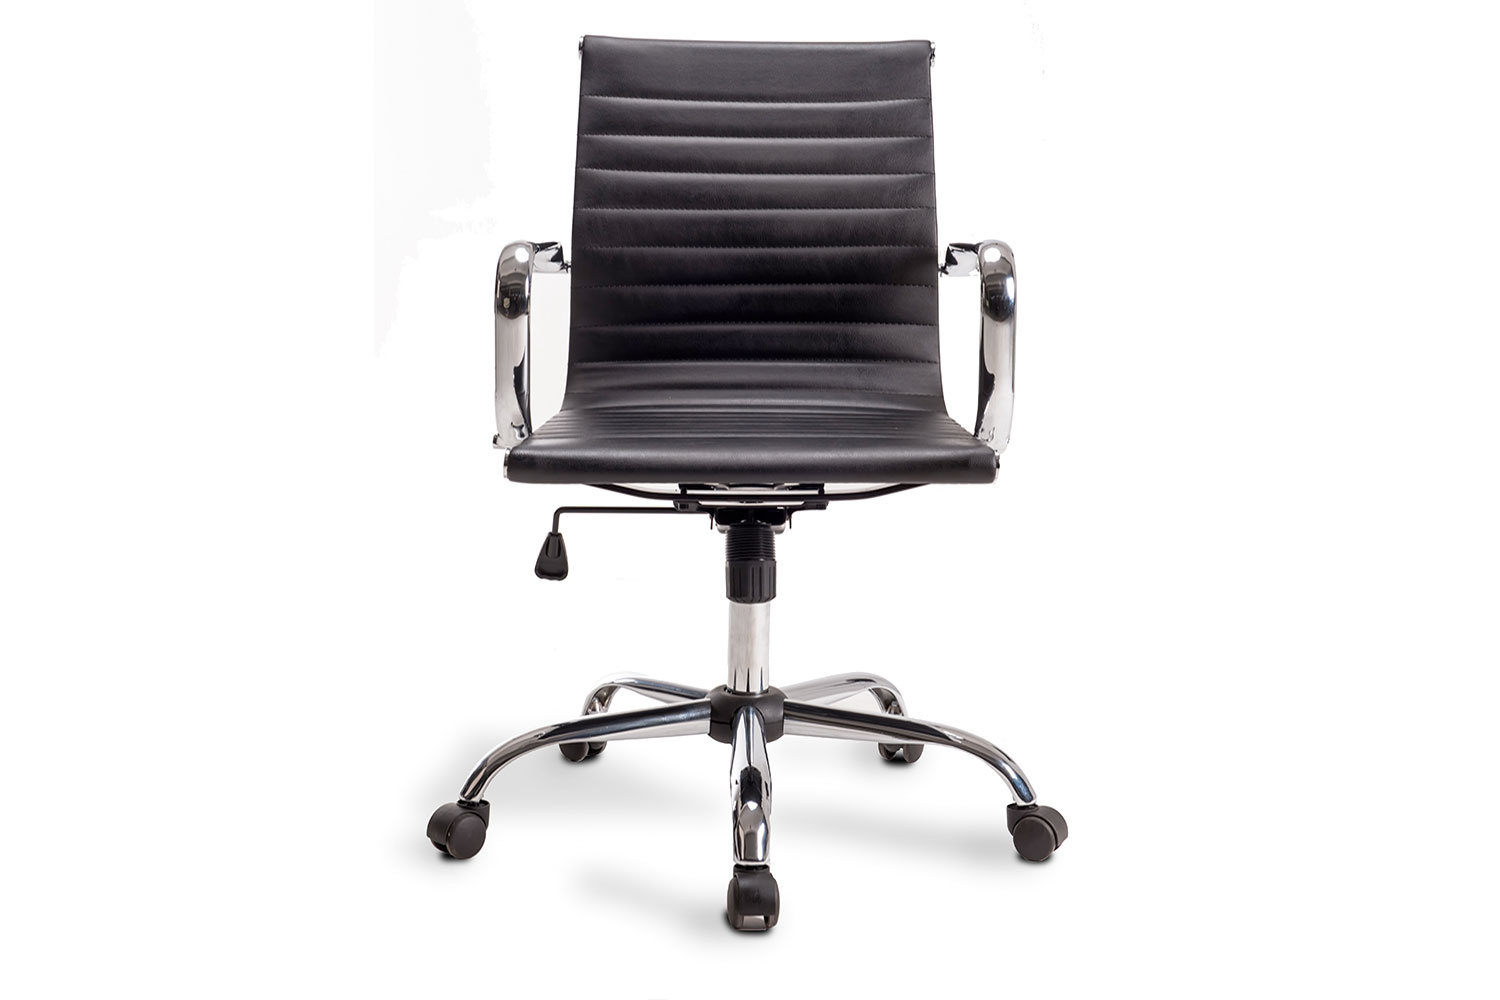 ergonomic chair harvey norman compact dining table and chairs line office new zealand